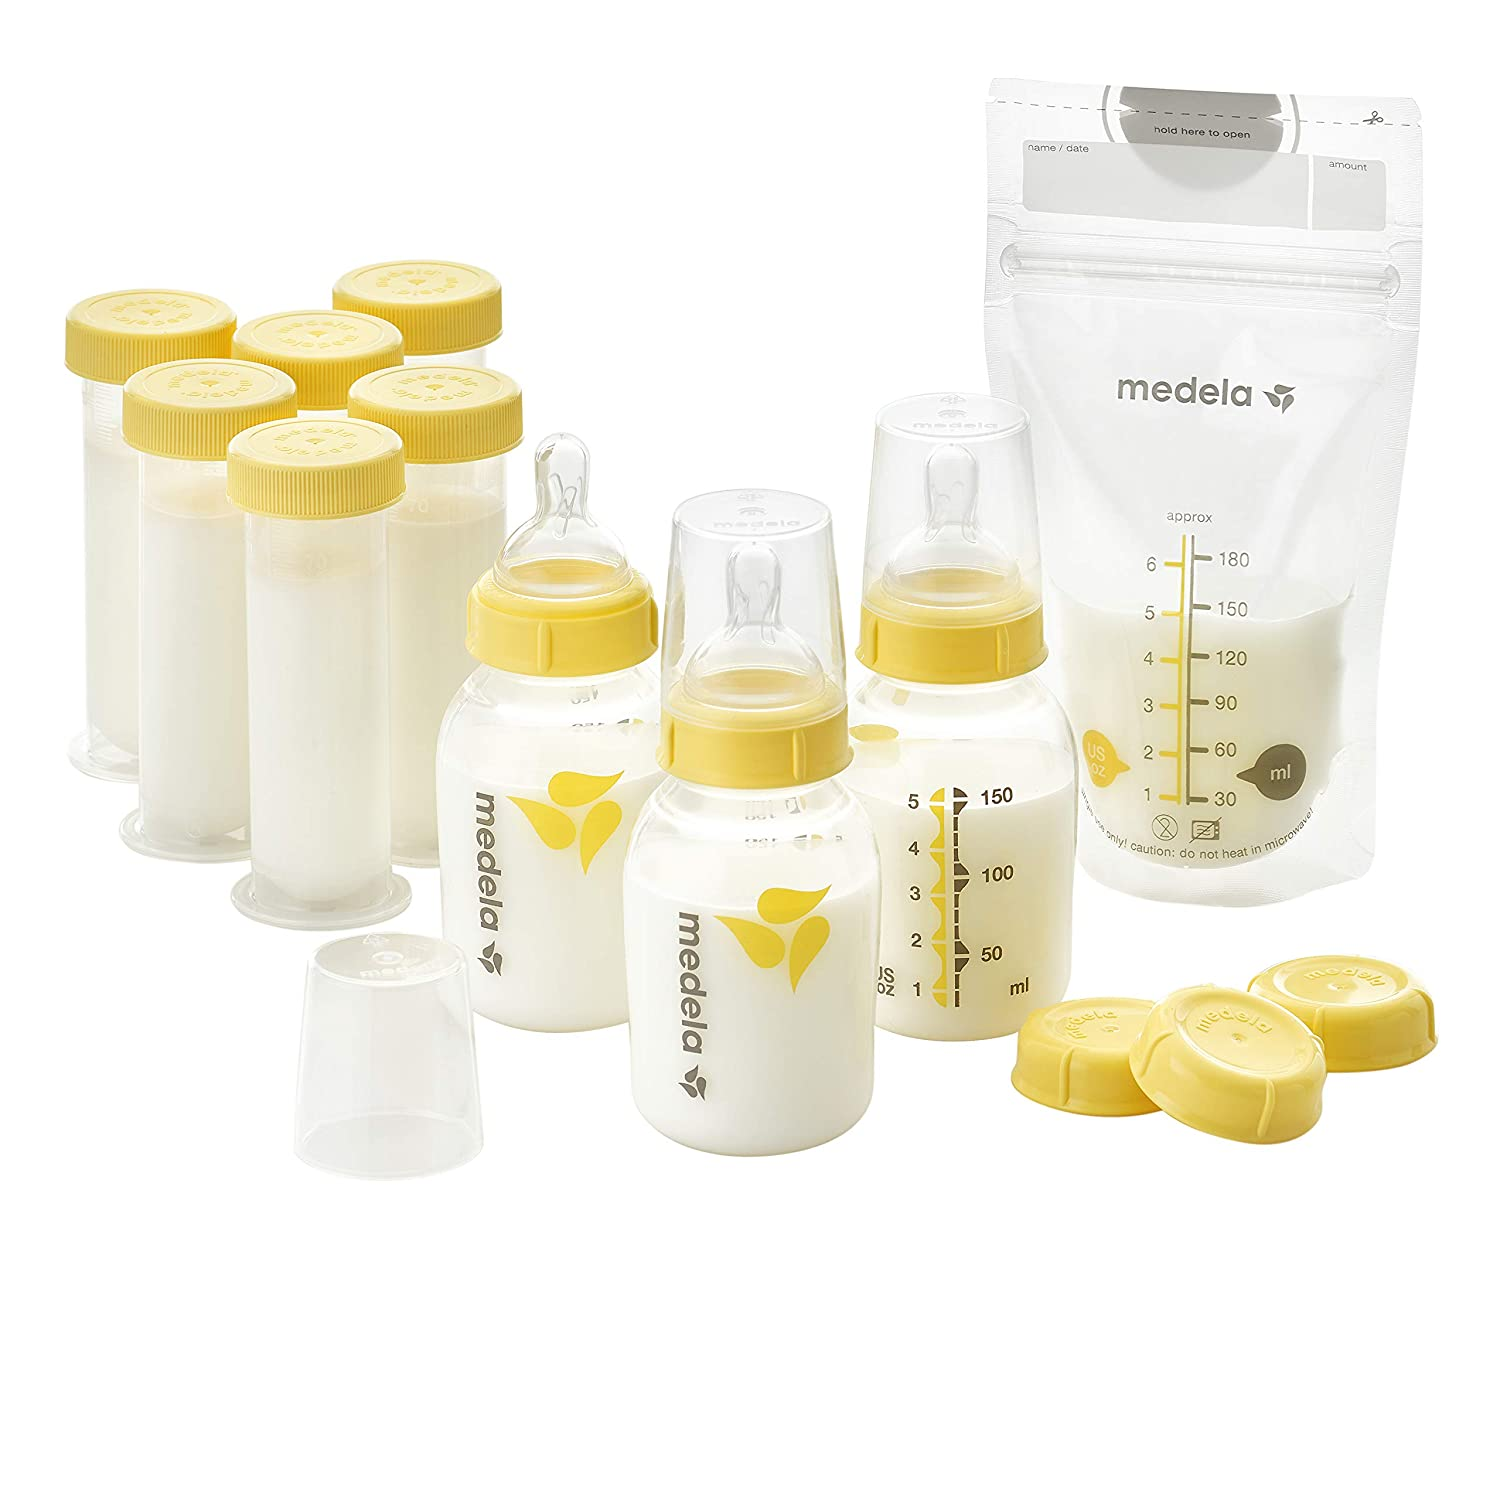 Made Without BPA Breastfeeding Supplies /& Containers Medela Breast Milk Storage Solution Set Breastmilk Organizer